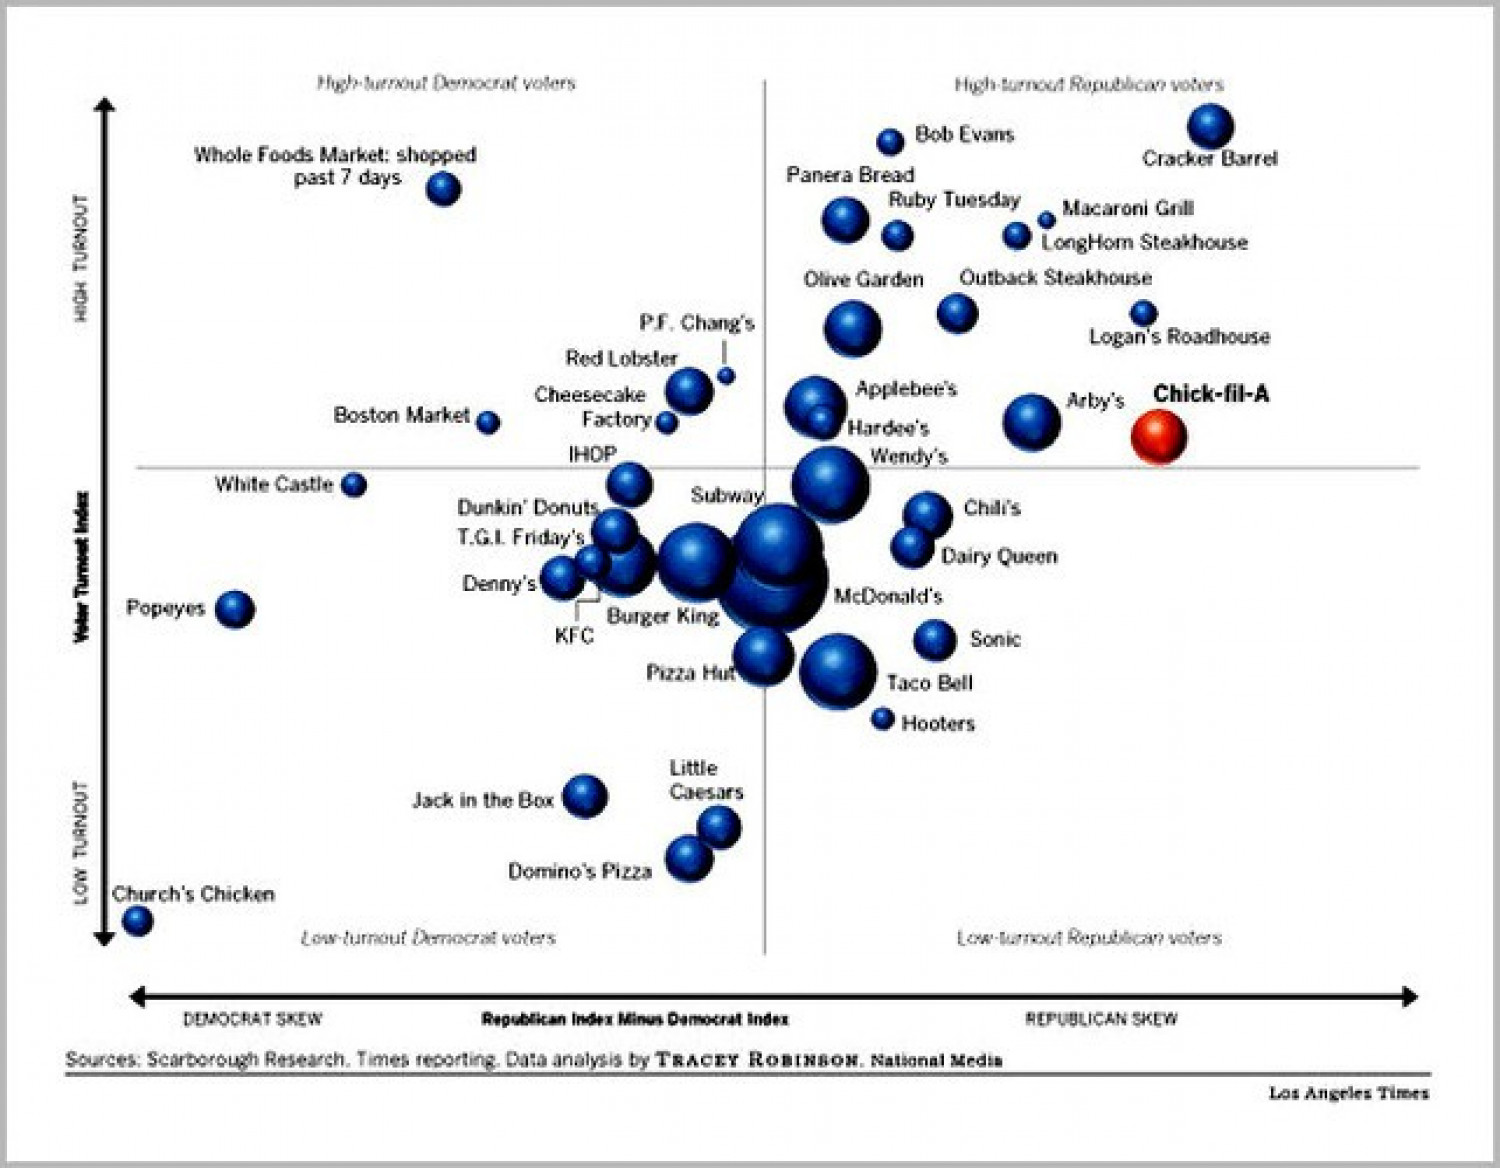 Our Fast Food Preferences as a window onto politics Infographic